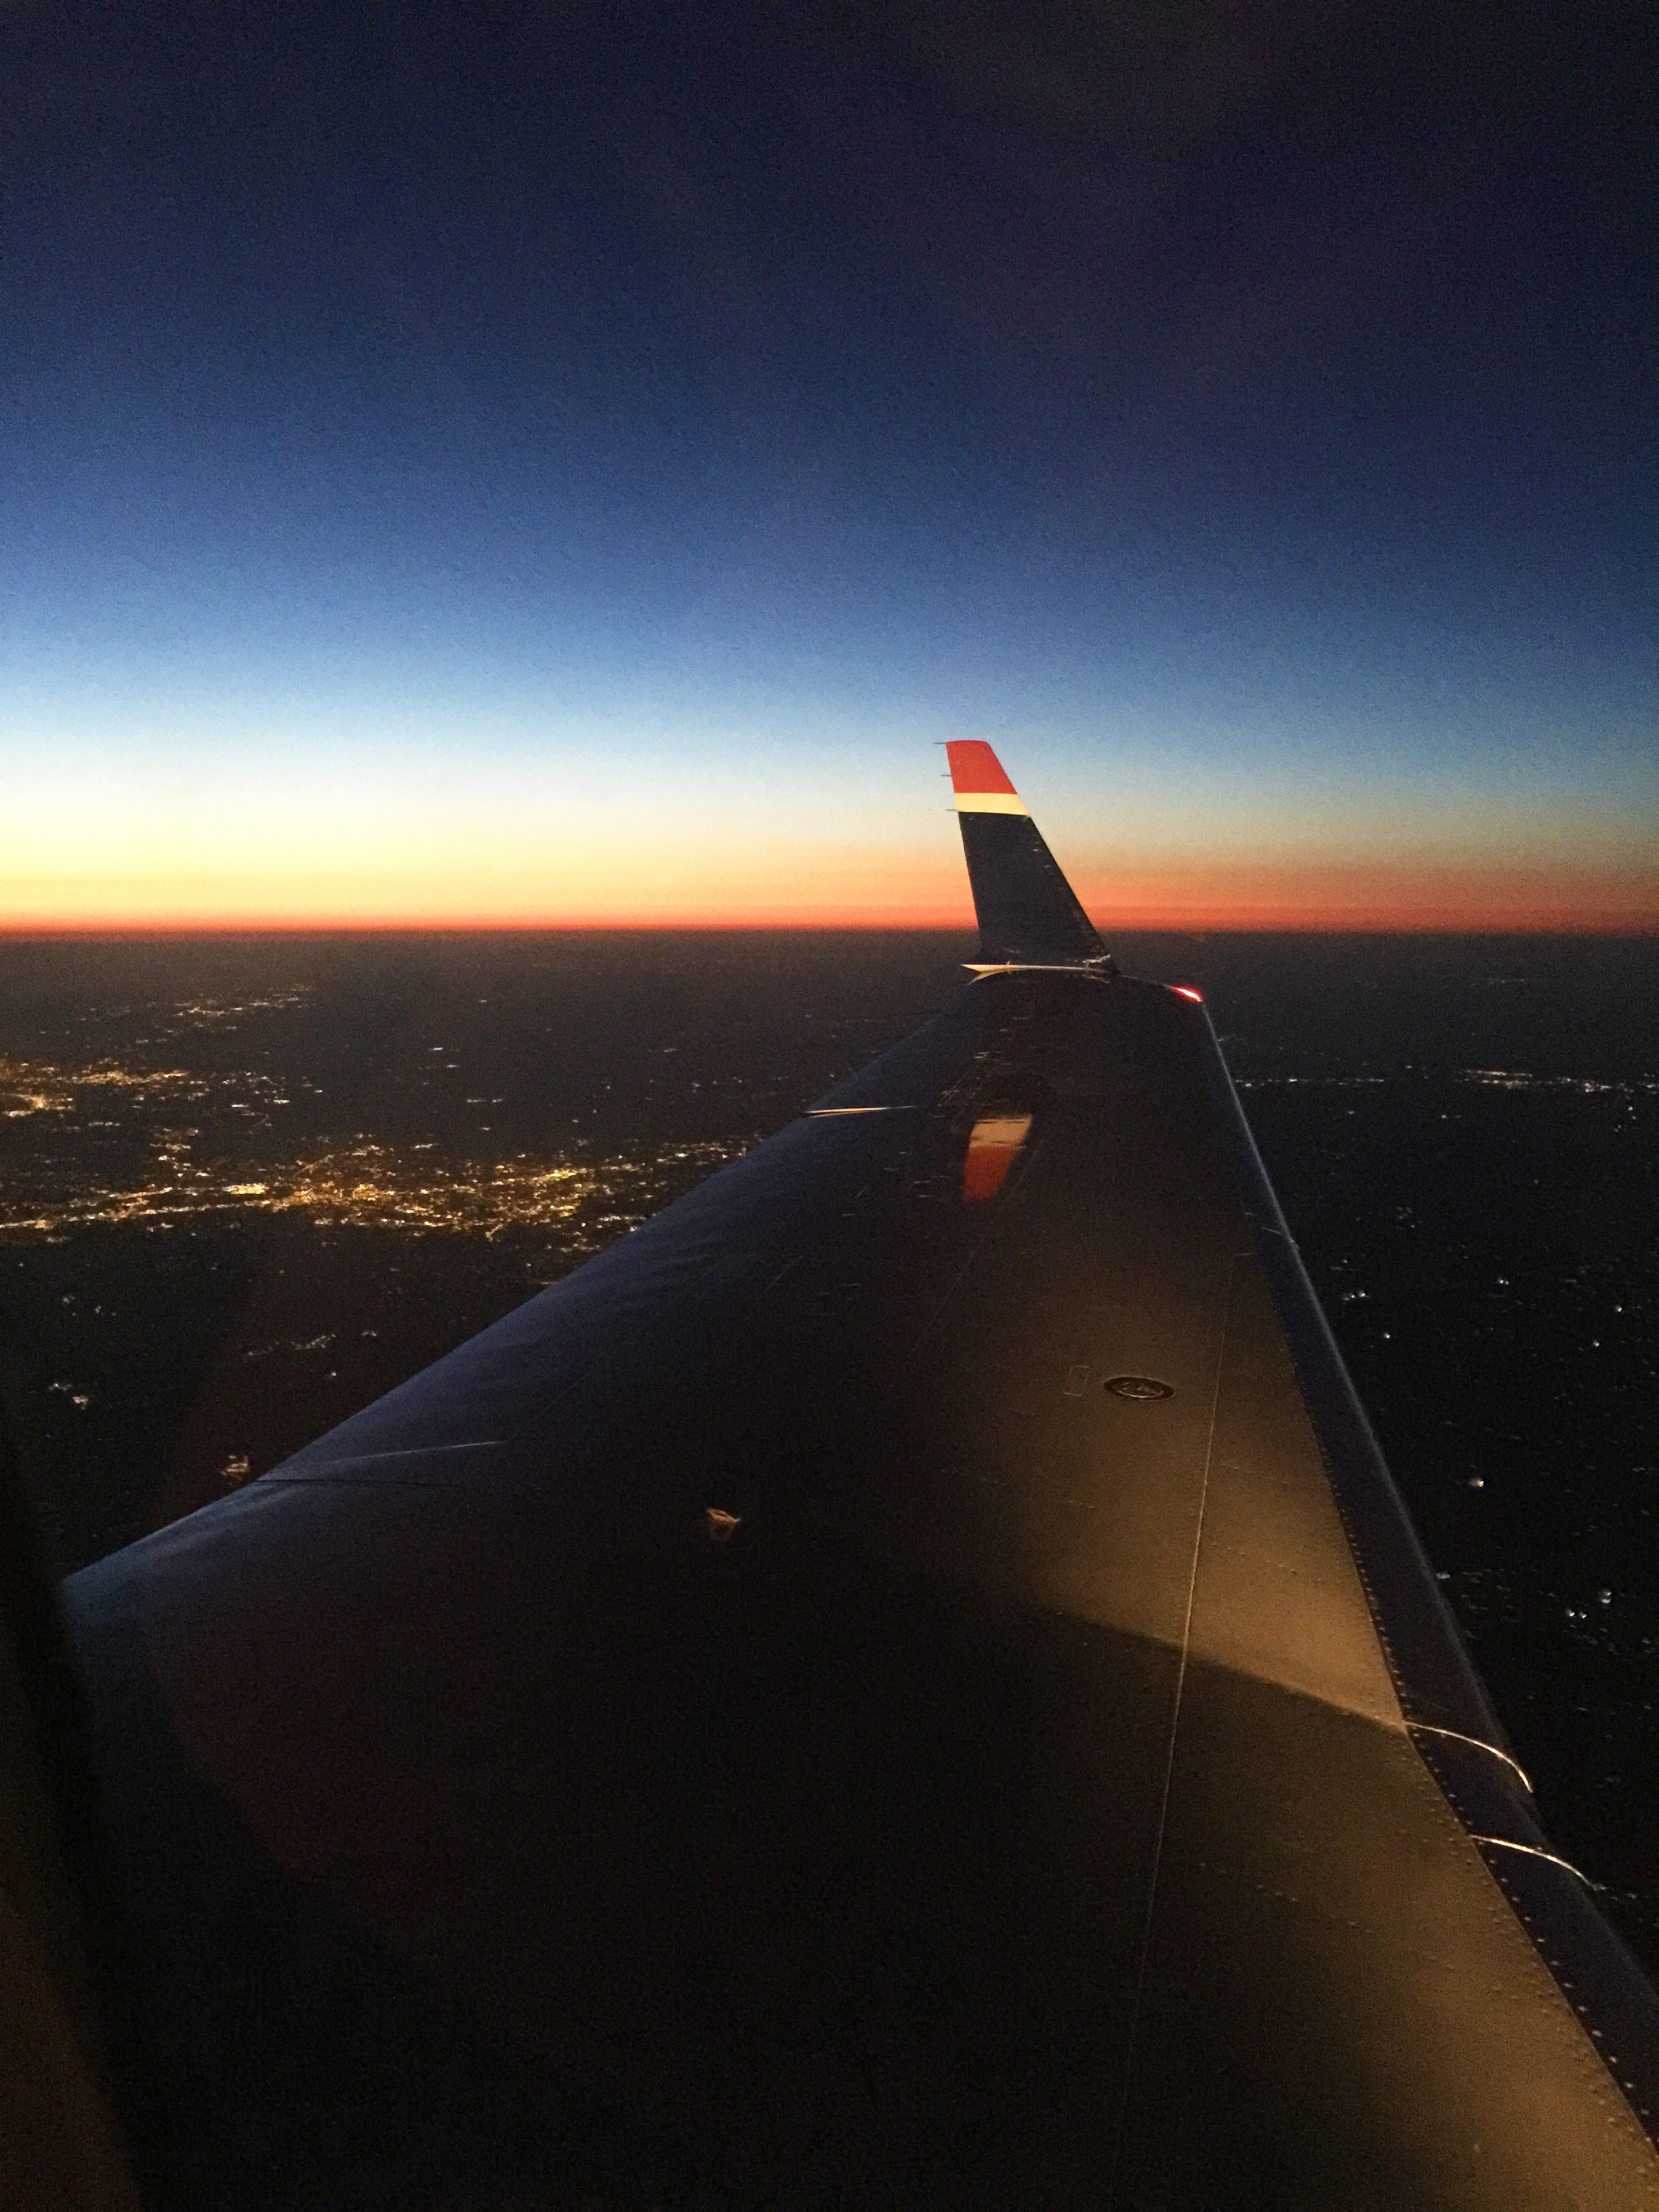 one good thing about early flights! Being able to see Gods wonders as the sun rises up over the clouds